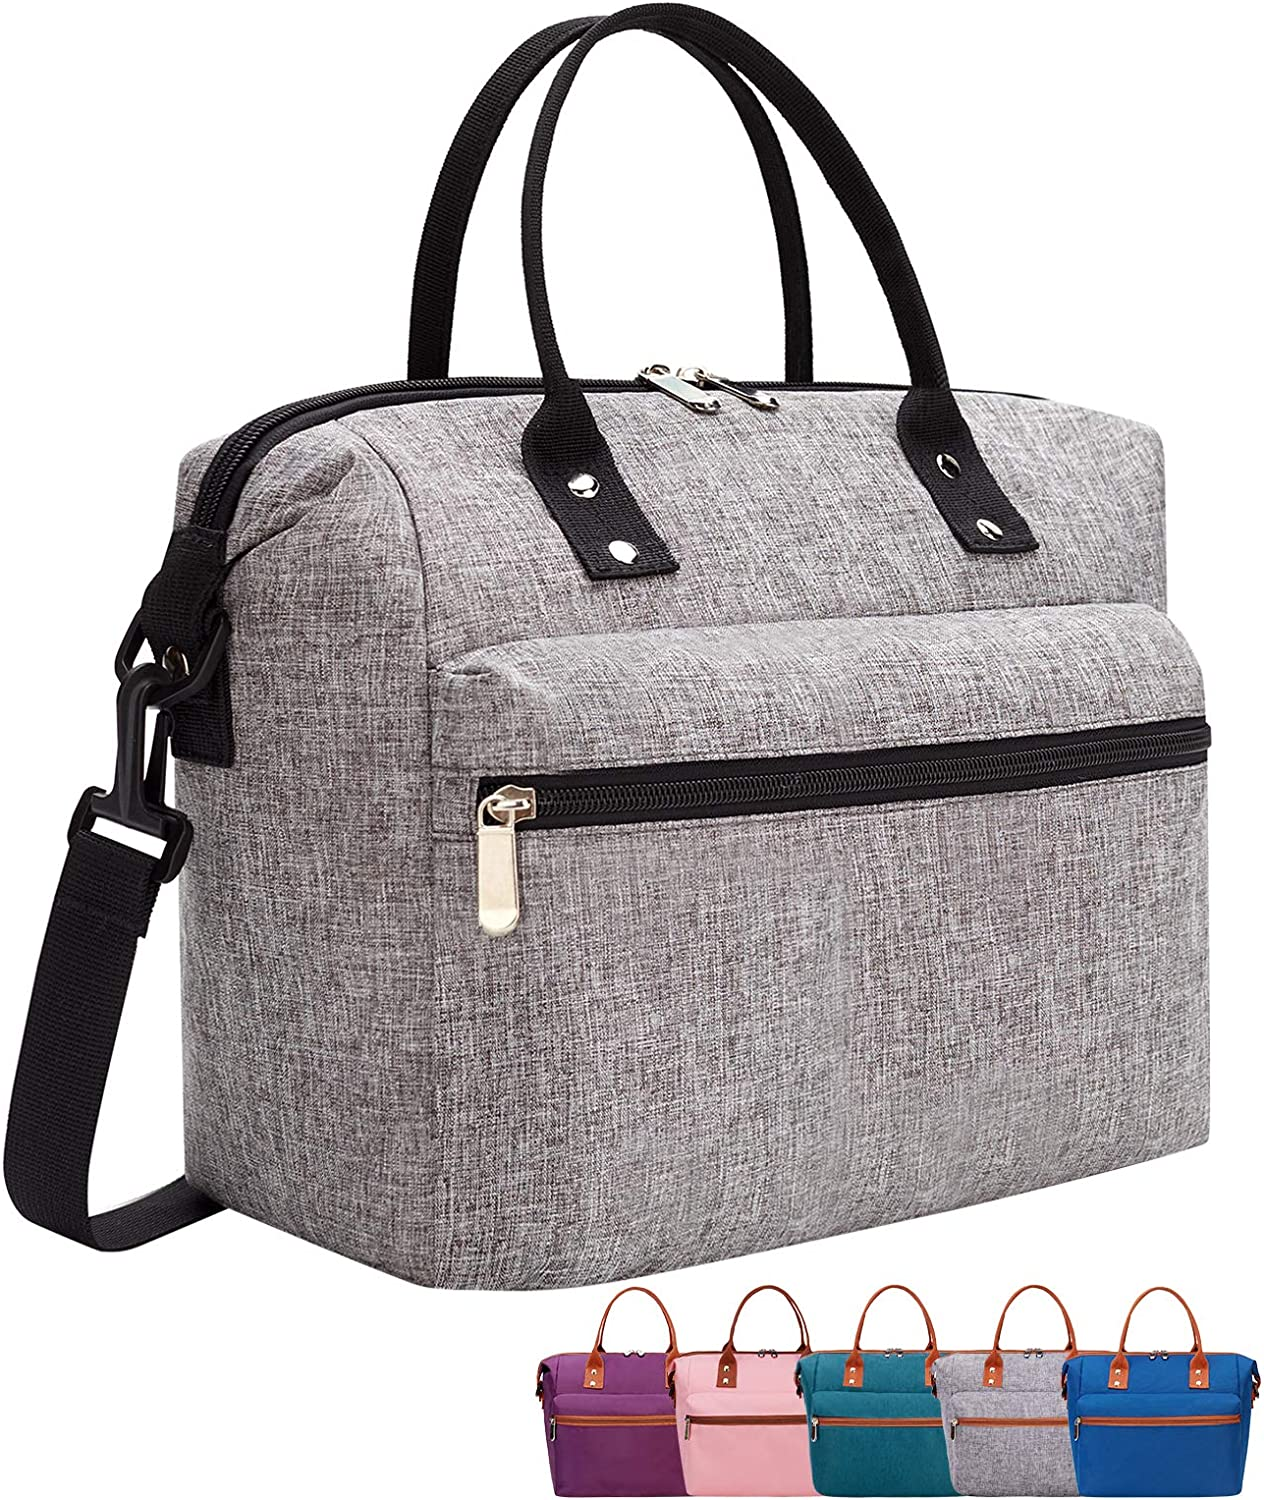 Leakproof Insulated Lunch Tote Bag with Adjustable & Removable Shoulder Strap, Durable Reusable lunch Box Container for Women/Men/Kids/Picnic/Work/School-Gray